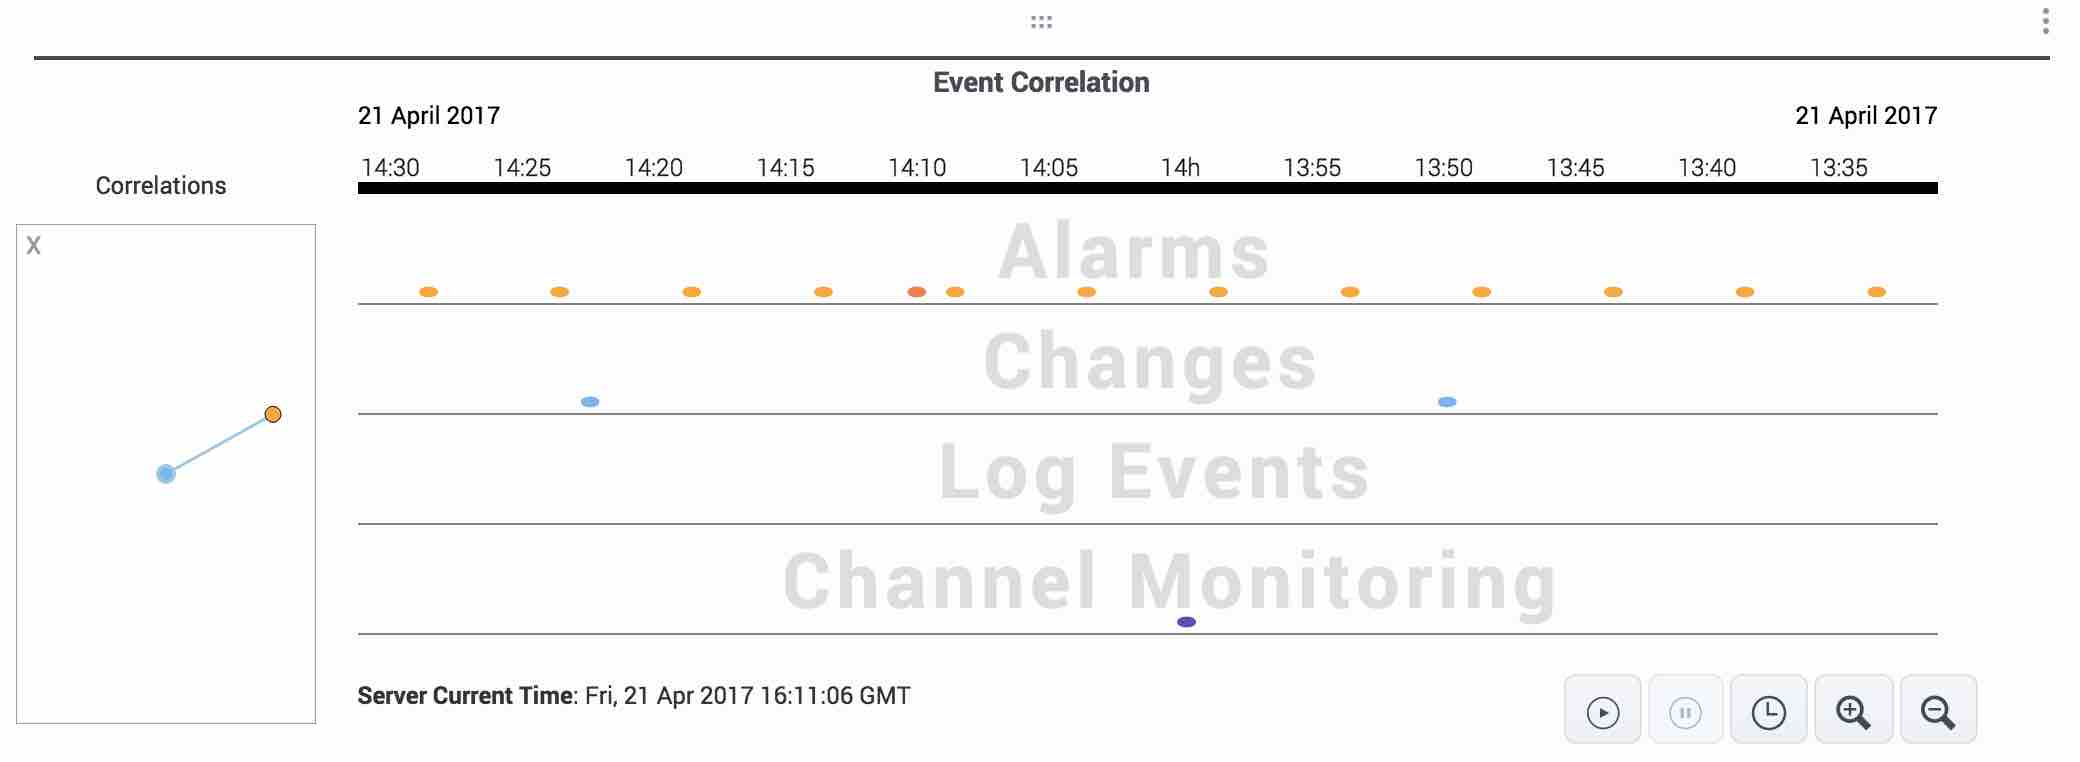 WB Single Click on Event Displays Correlations Popup 04-21-2017.jpg